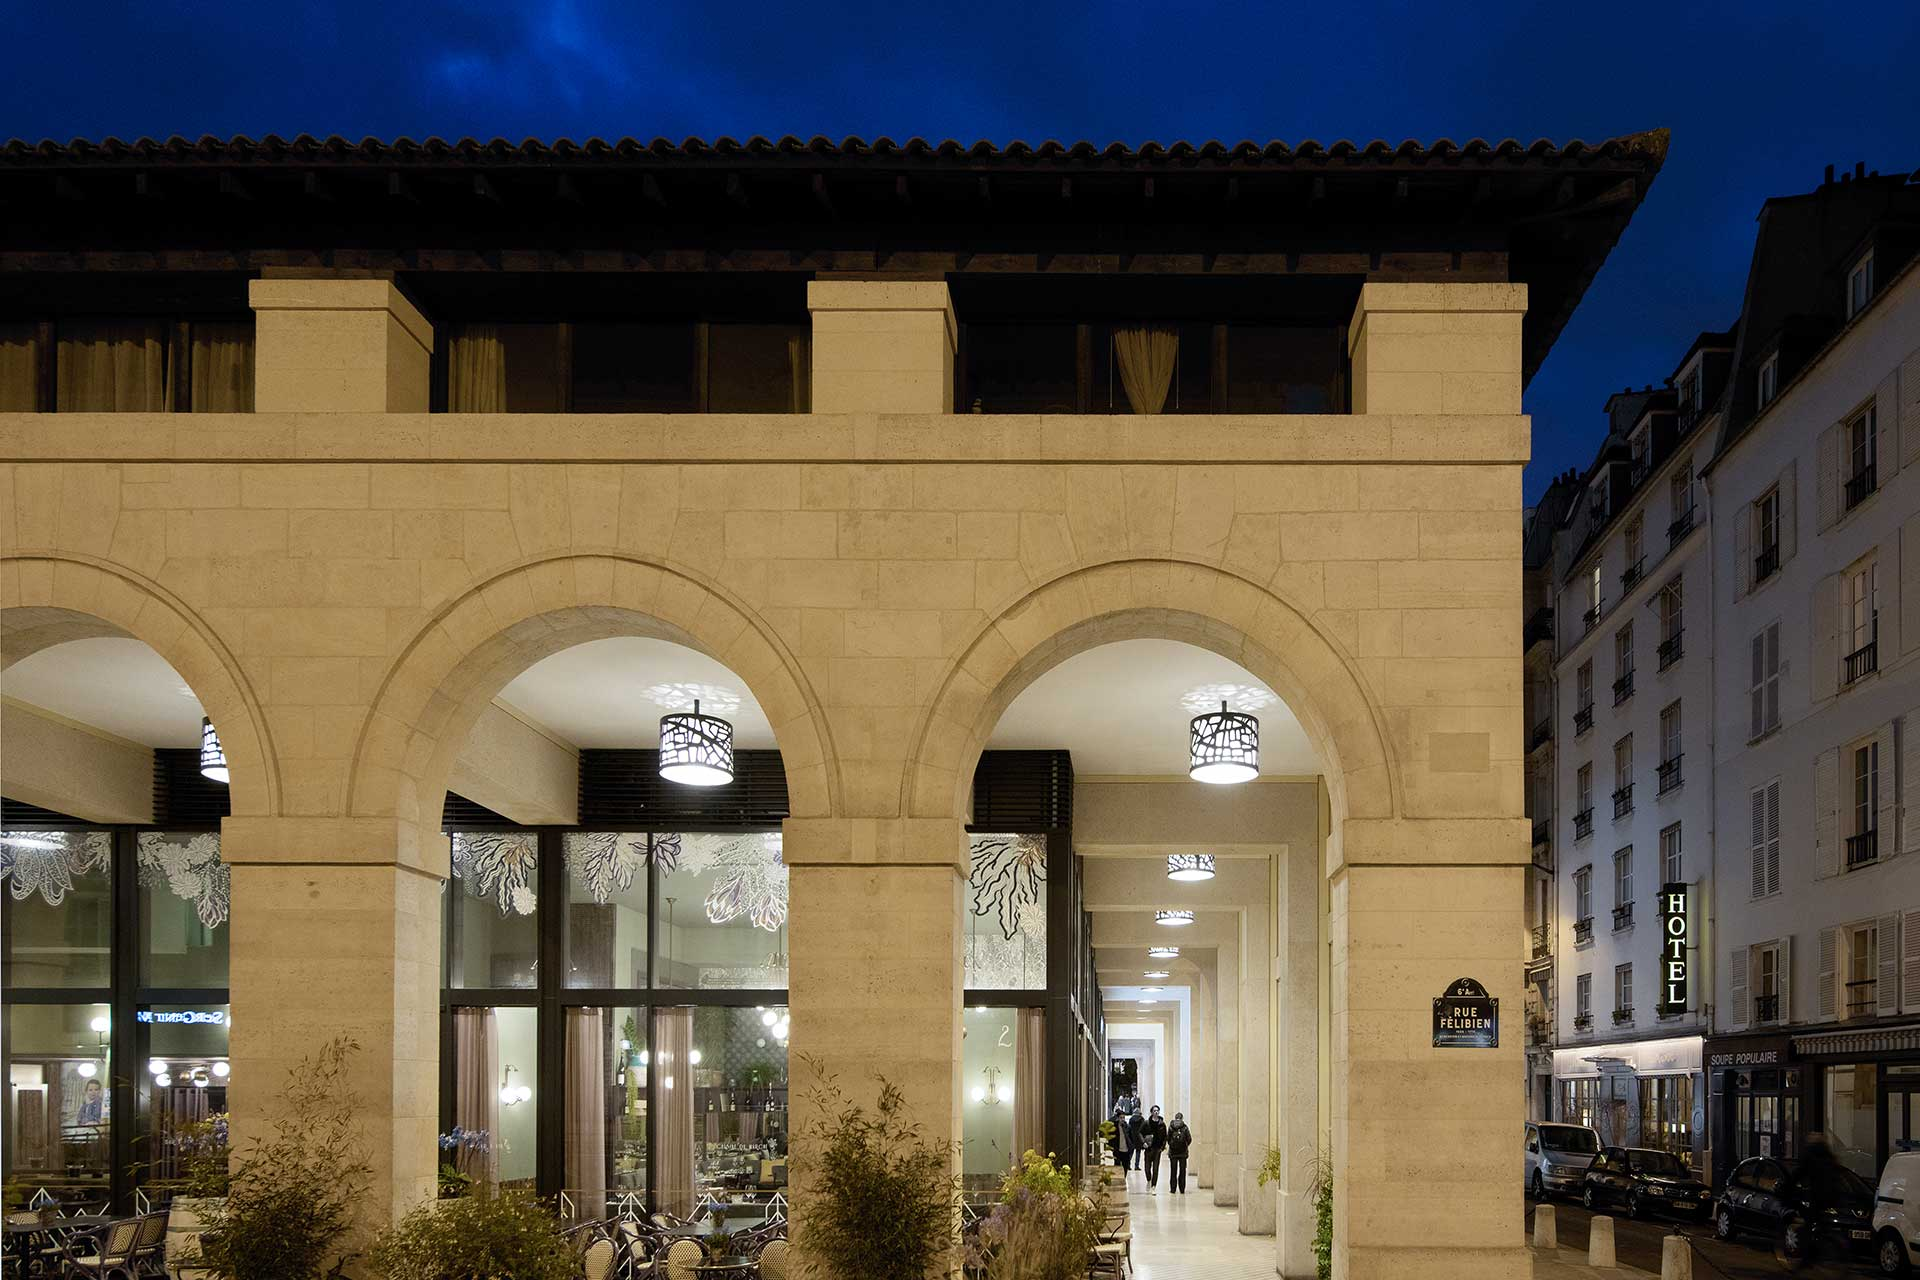 Customised luminares have transformed the nocturnal appearance of Marché Saint Germain while cutting energy costs